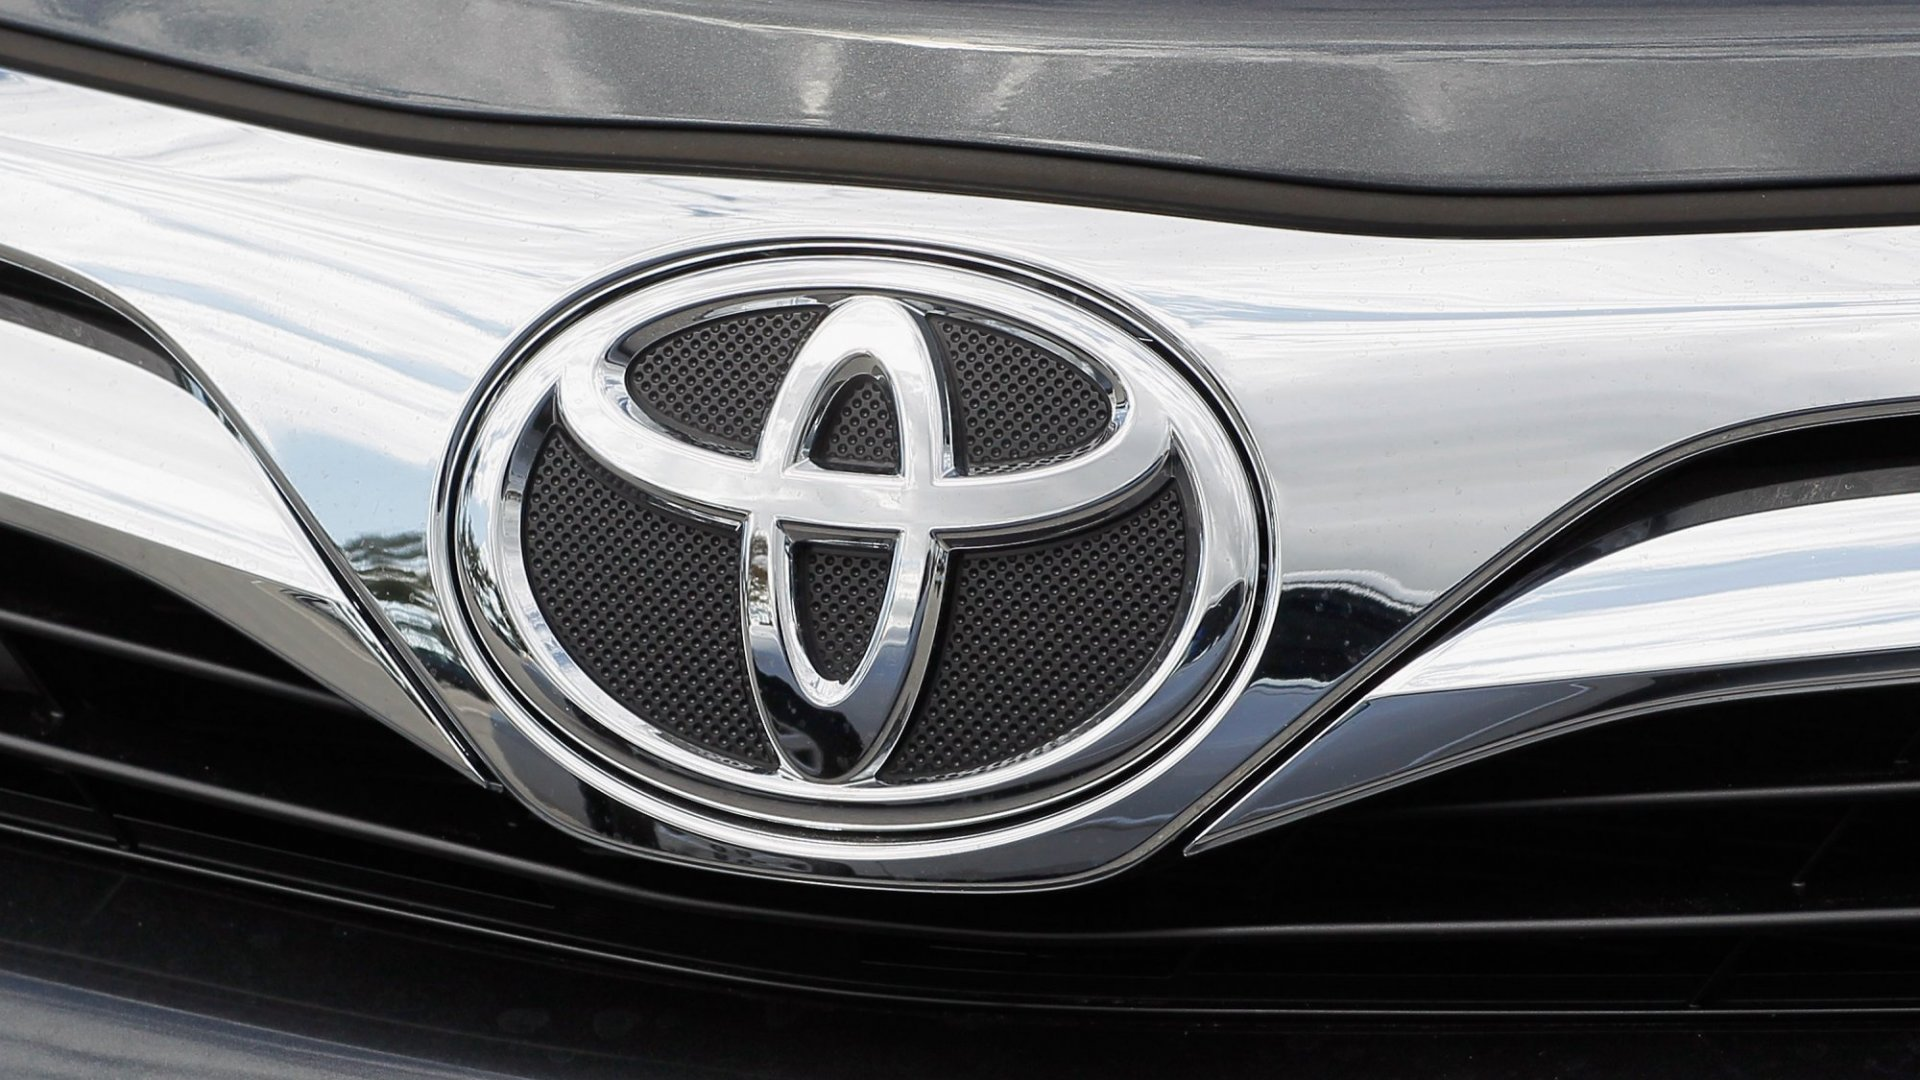 Toyota Partners With Stanford, MIT to on $50 Million AI Research Project